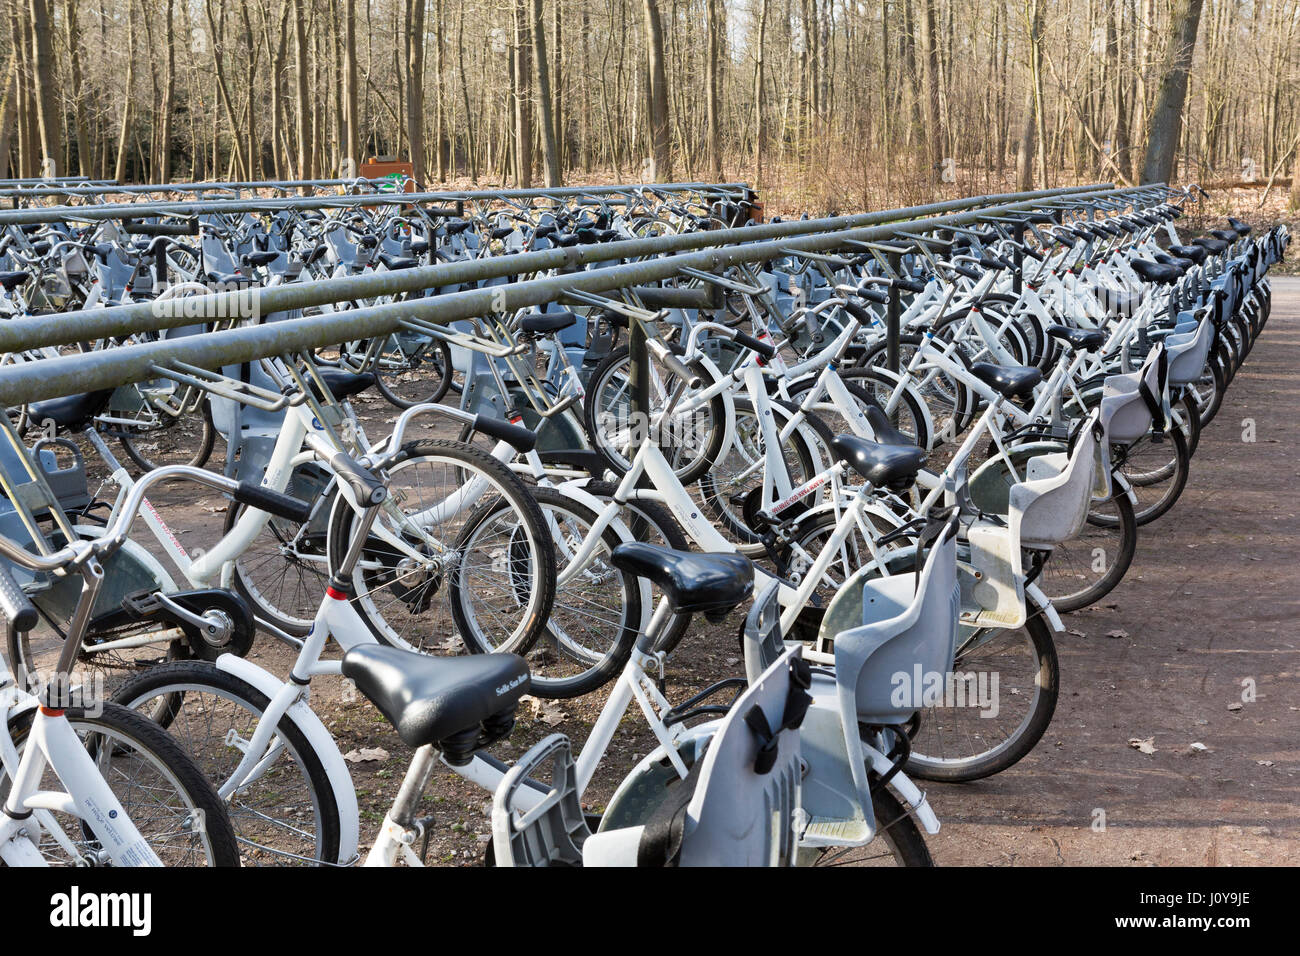 Bicycles for hire in the Hoge Veluwe National Park, Netherlands - Stock Image